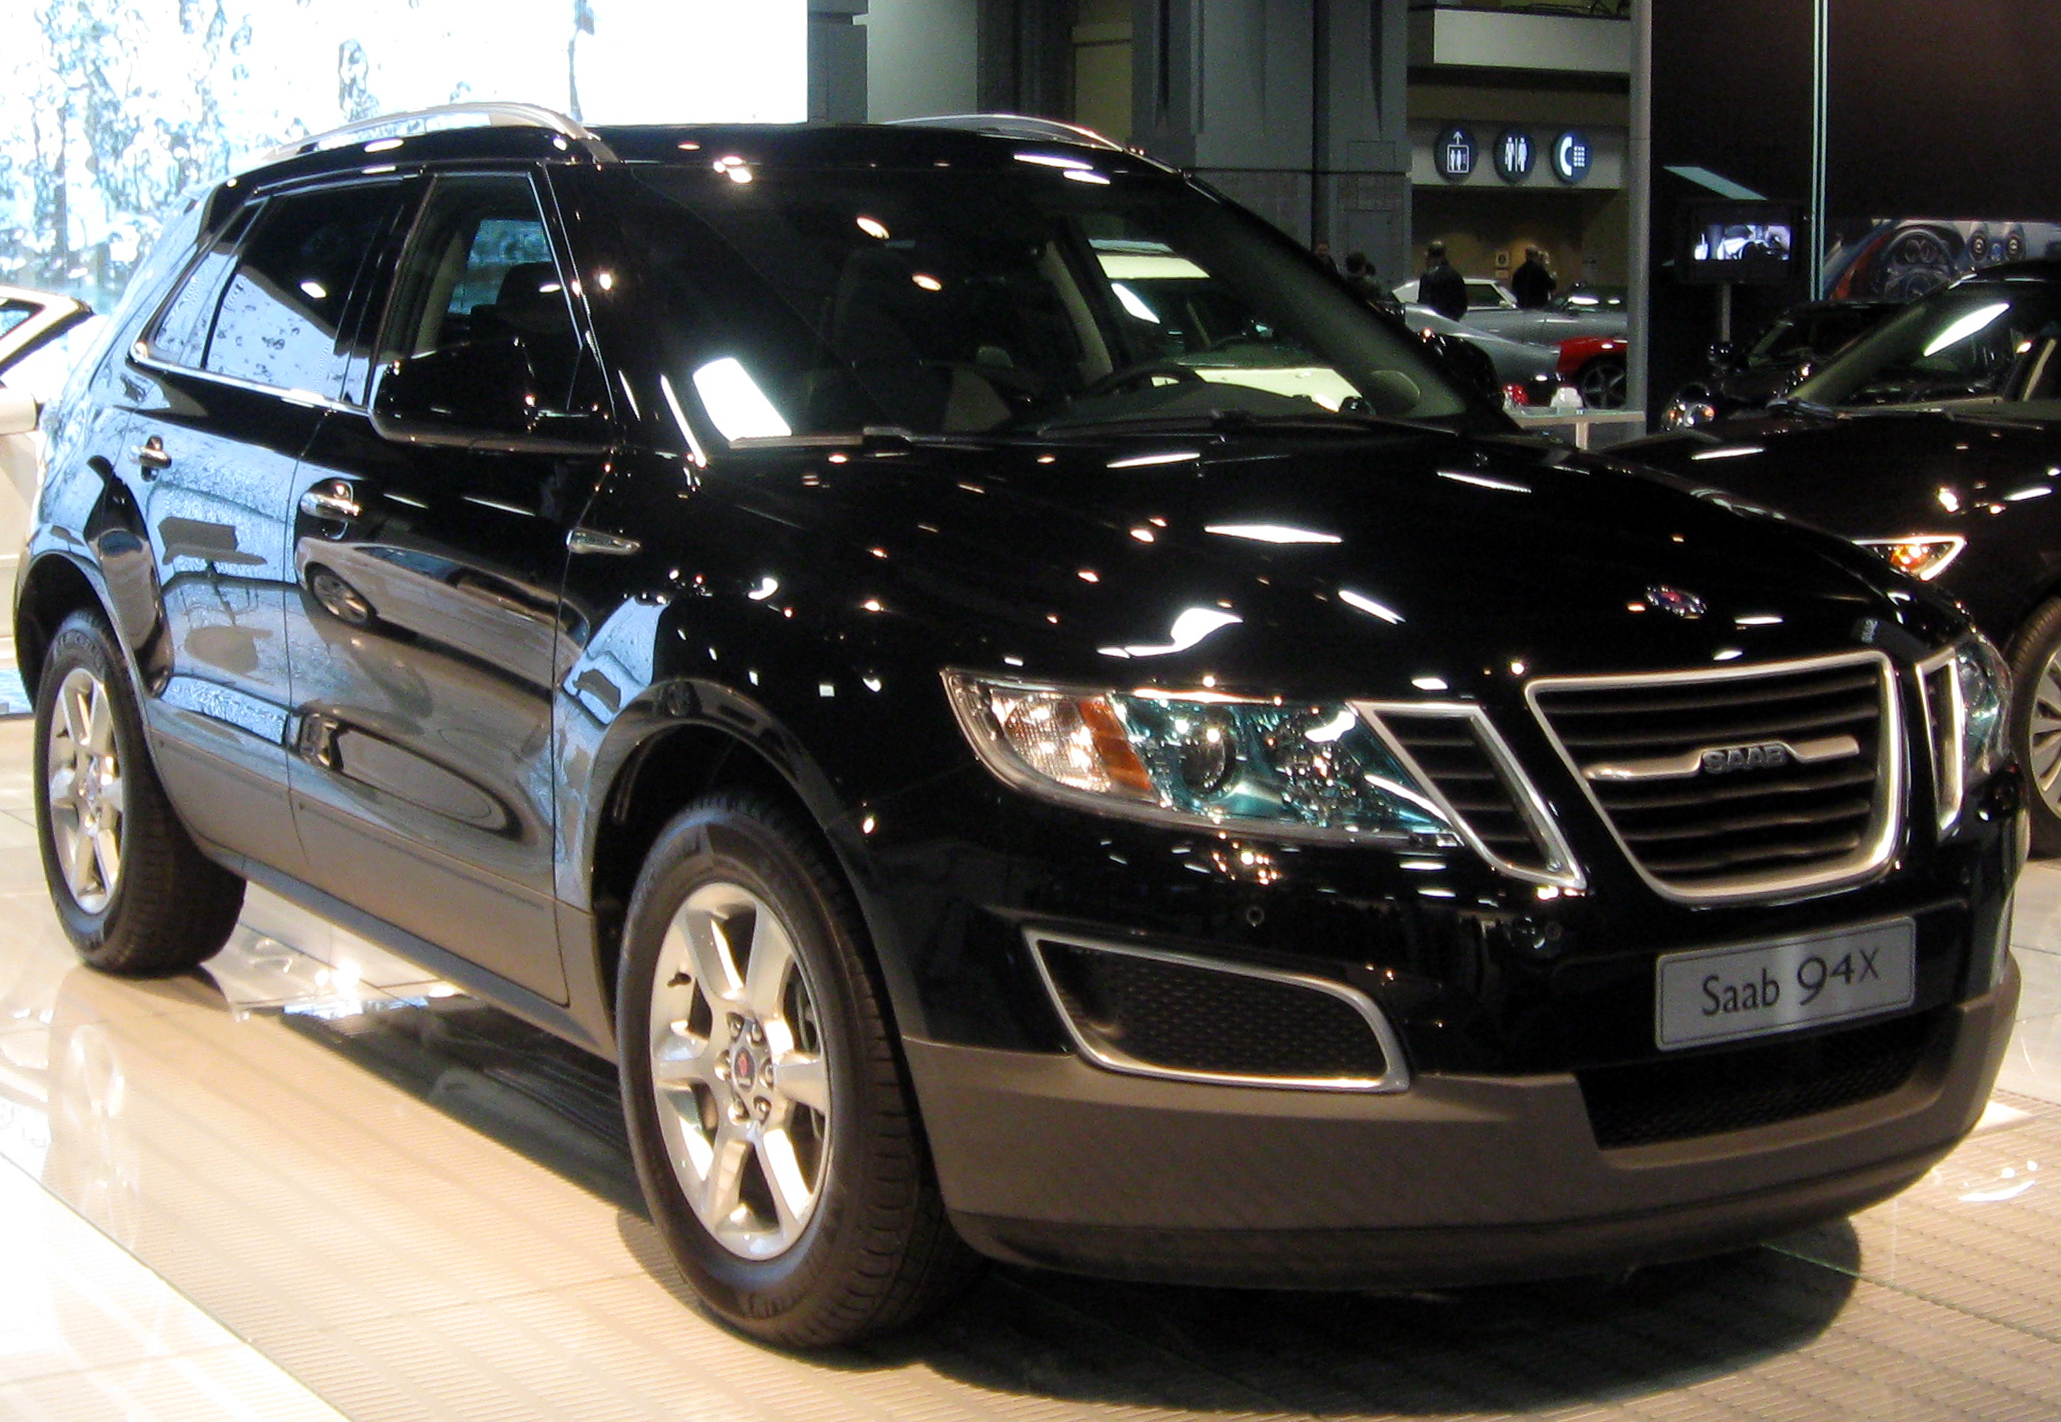 Pictures of saab 9-4x #12